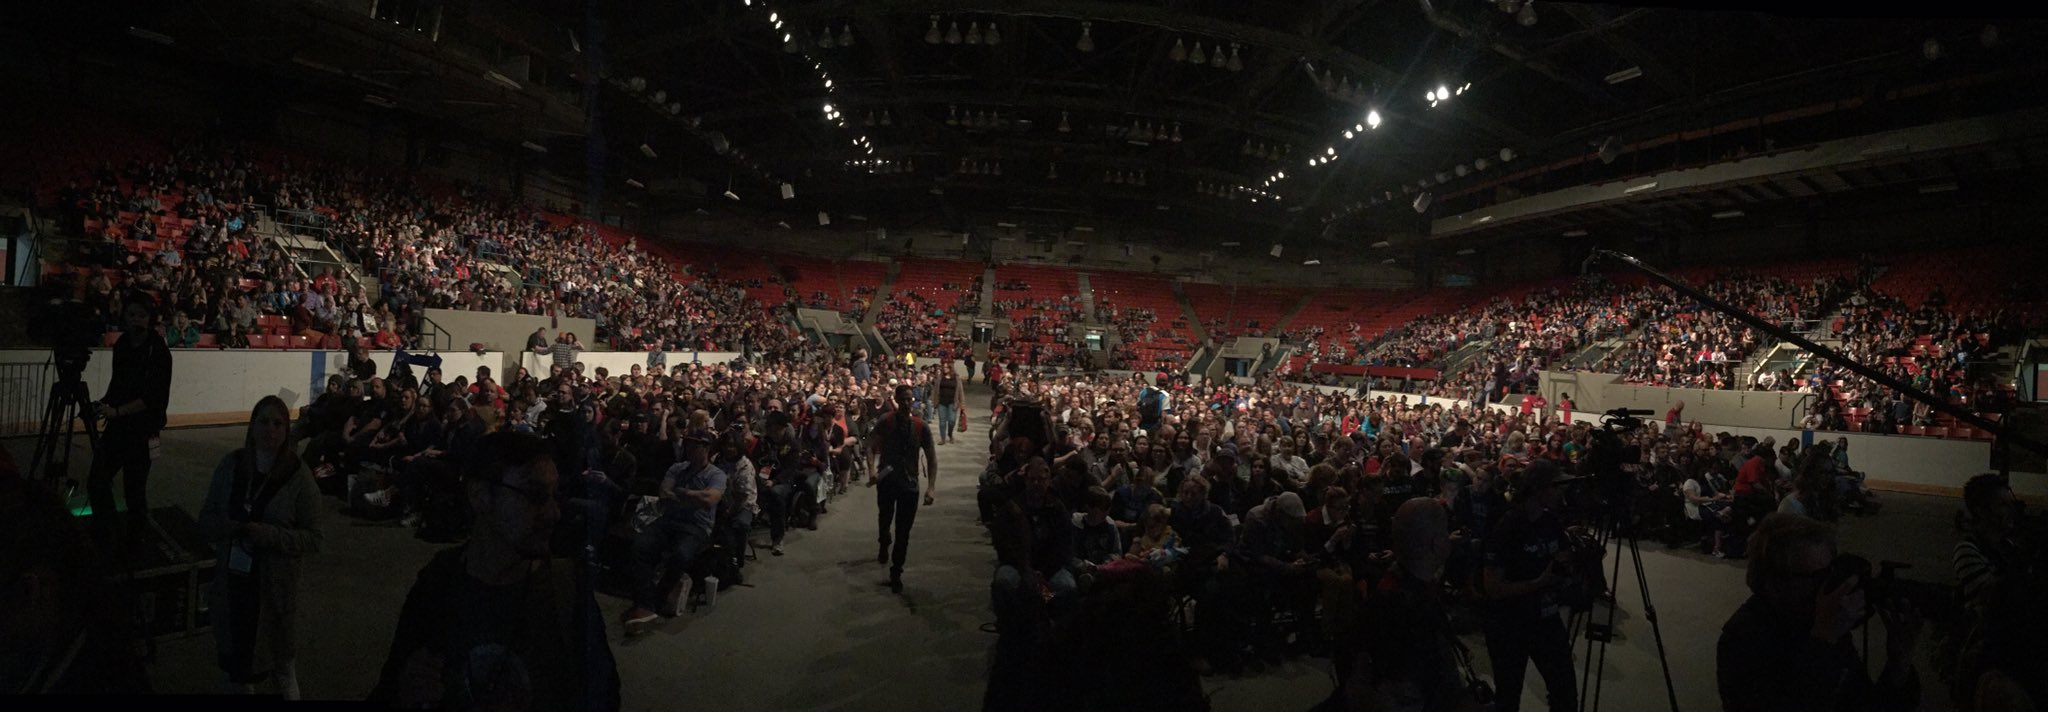 It's filling up... #PCapInYYC #CalgaryExpo https://t.co/oZtvGfGv7R